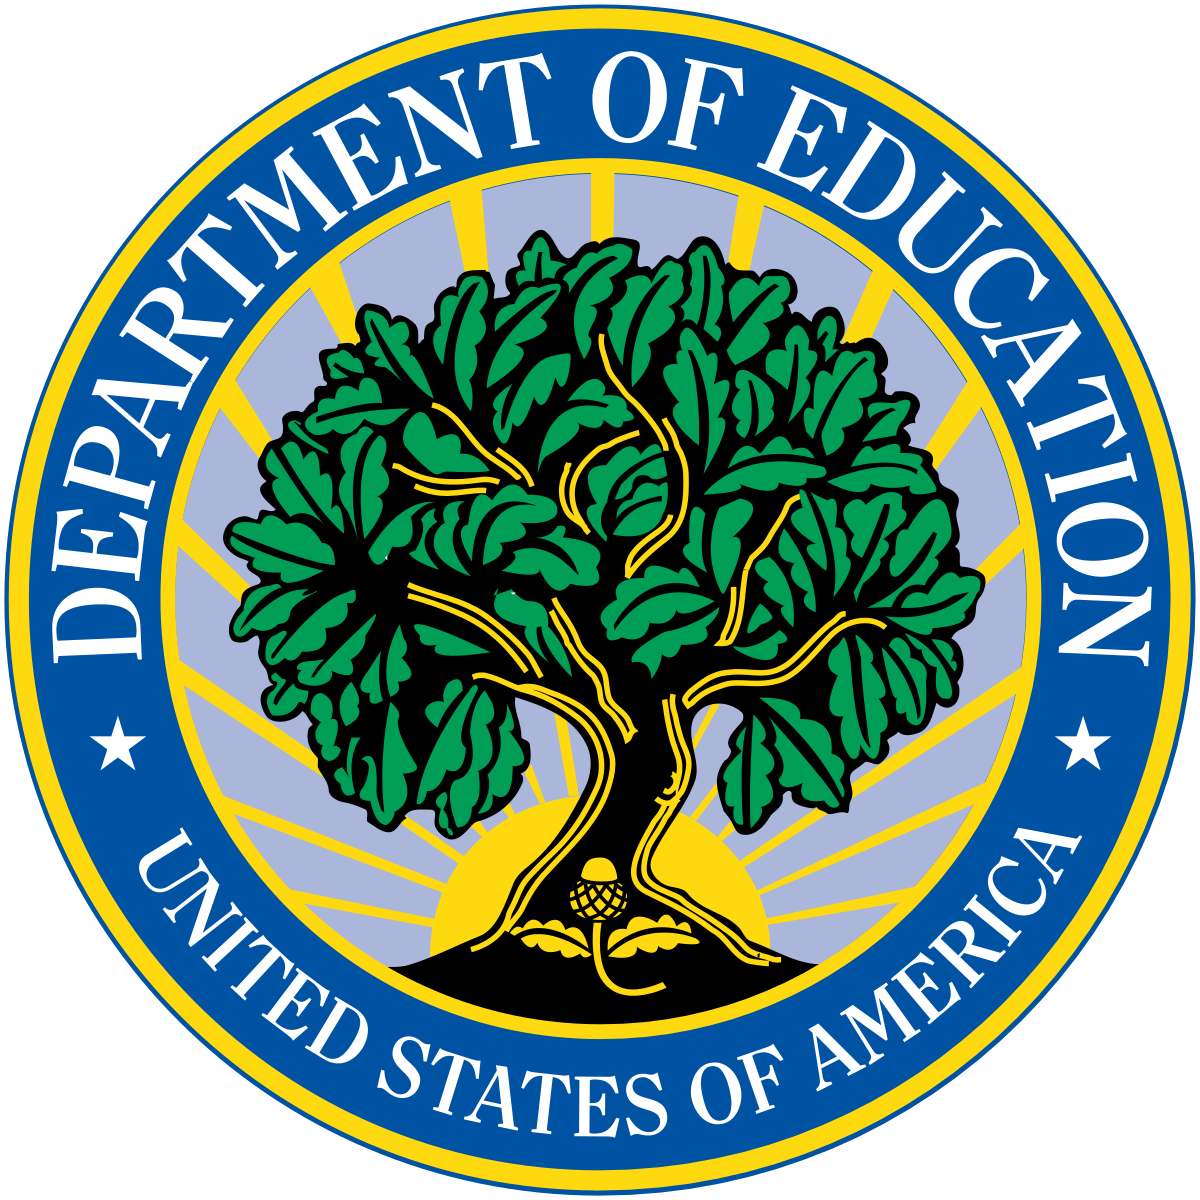 link to the US department of education